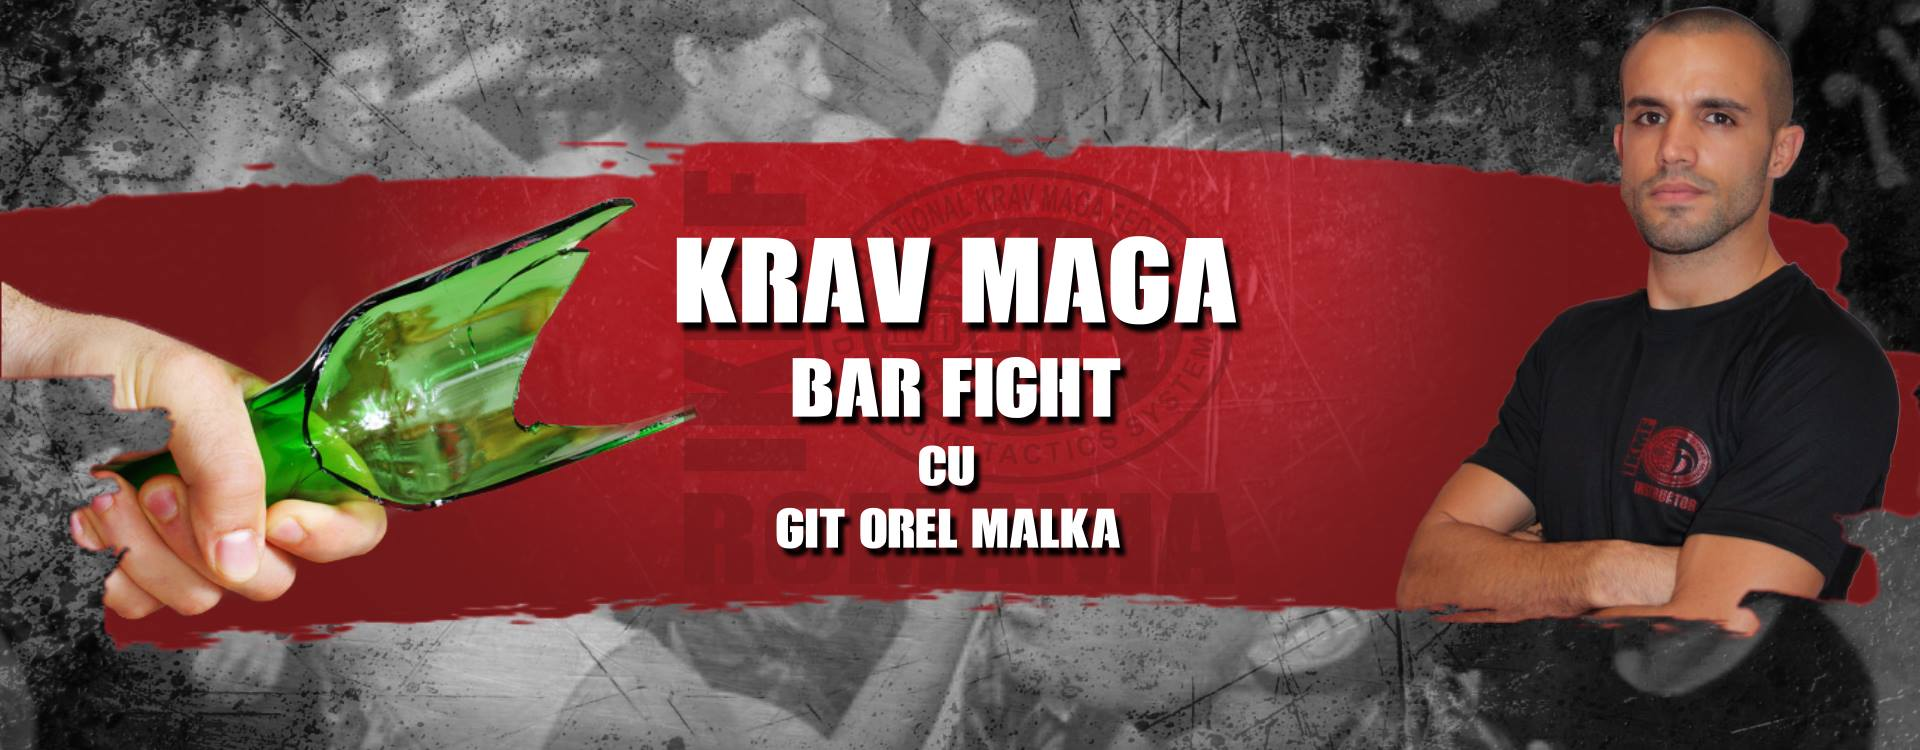 Bar Fight Seminar Krav Maga